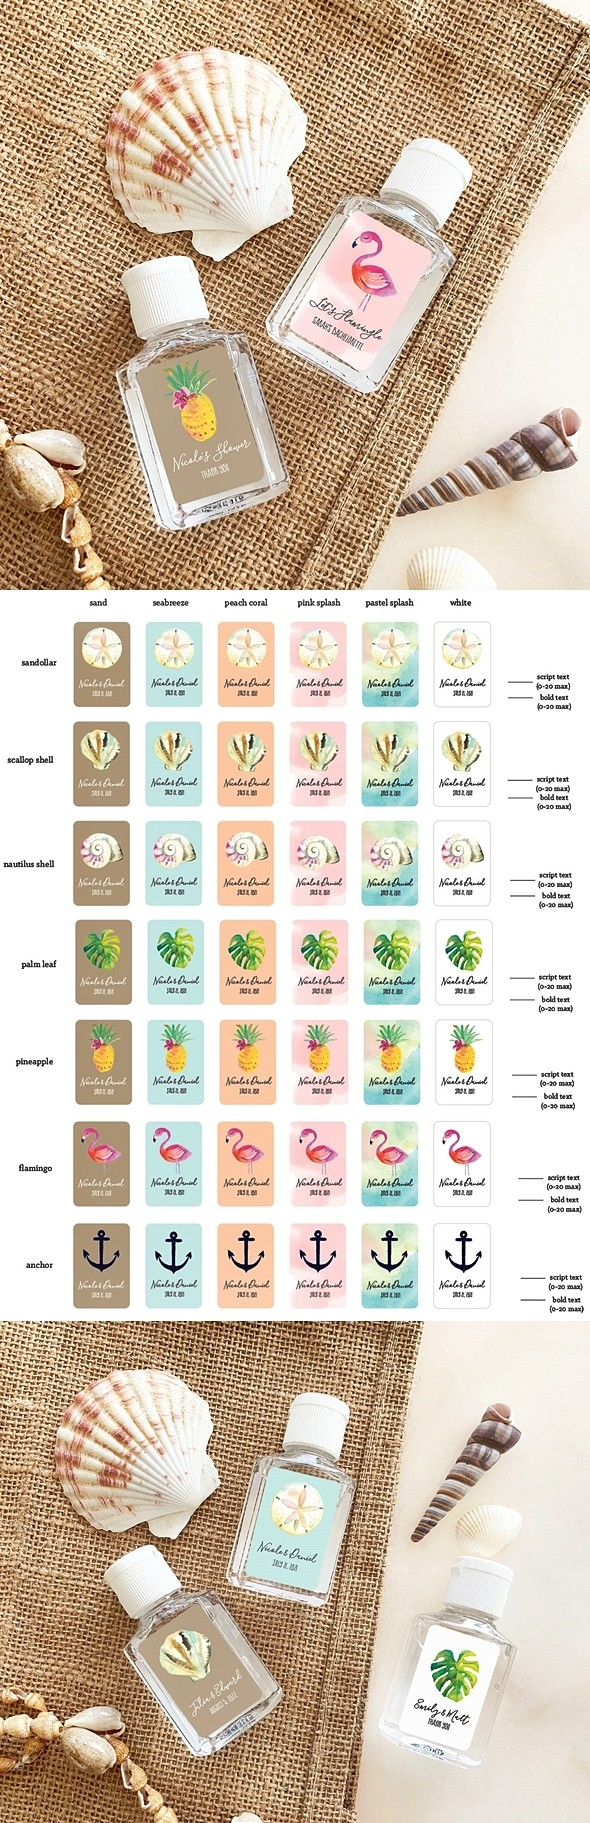 Event Blossom Personalized Tropical Beach Hand Sanitizer Bottles